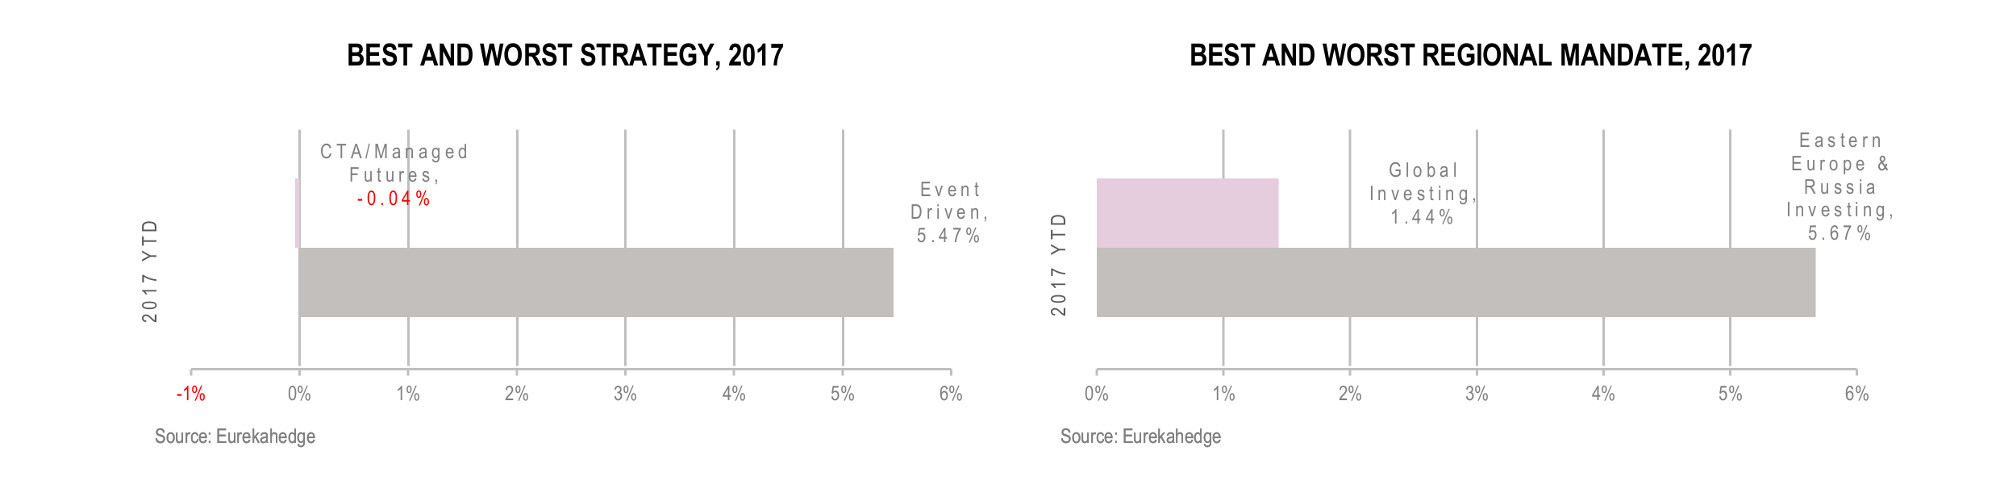 European Hedge Fund Infographic July 2017 - best worst strategy and regional mandate